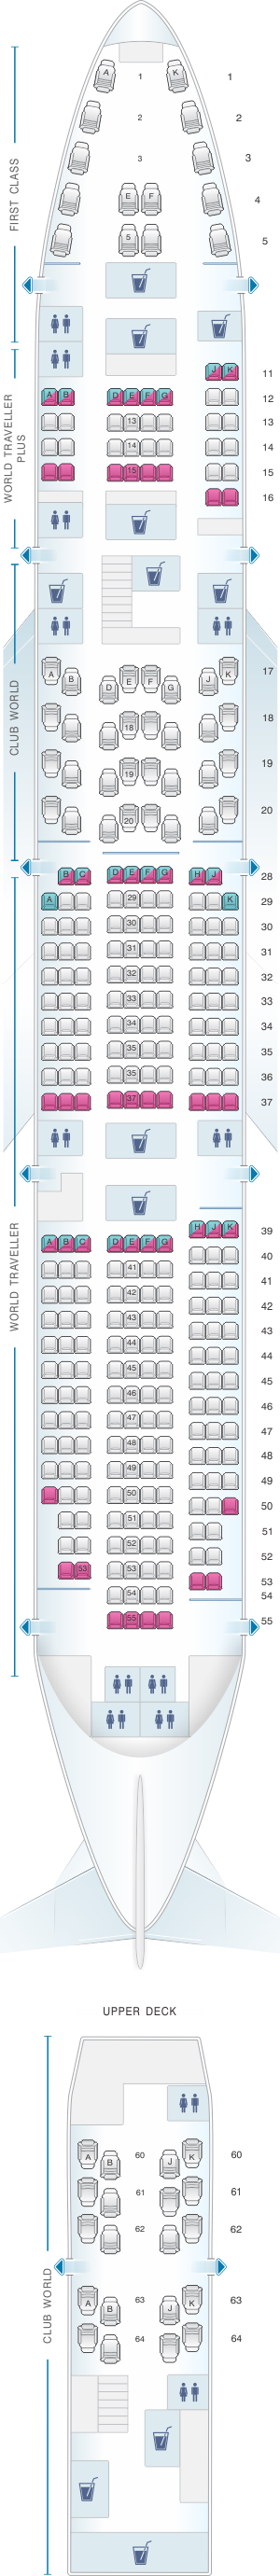 Seat map for British Airways Boeing B747 400 345PAX